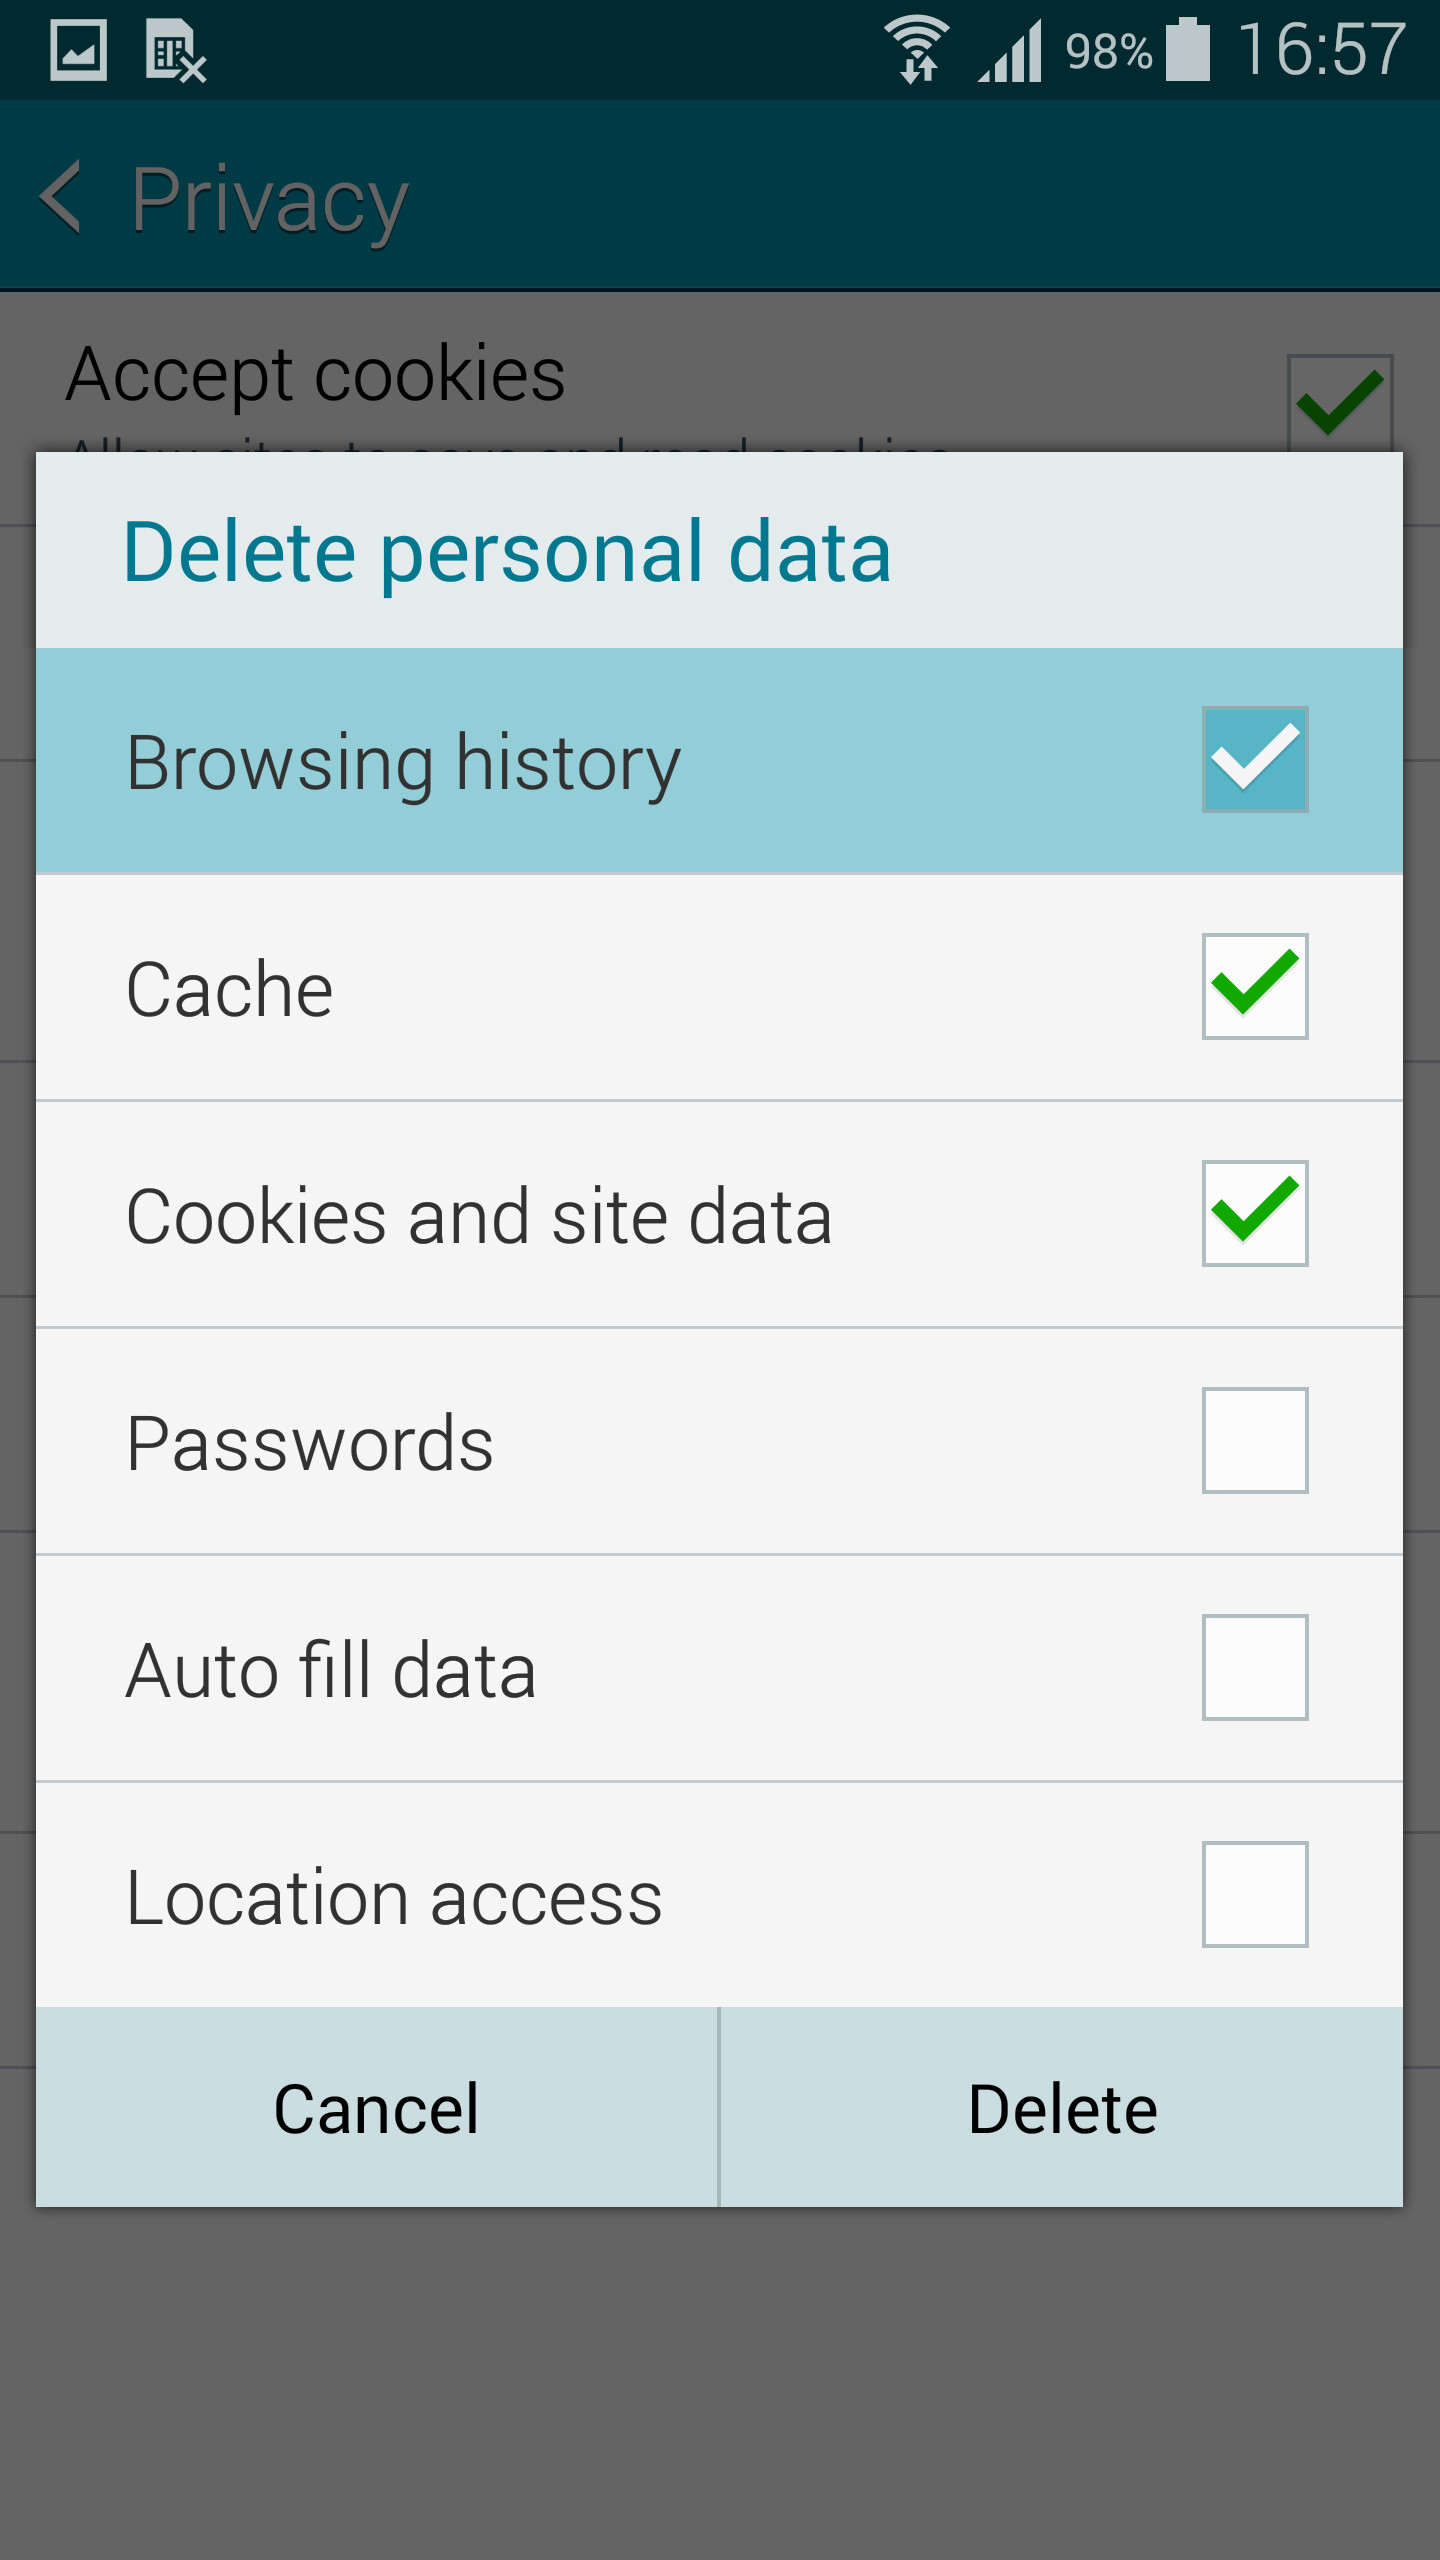 Make Sure Browser History Is Among The Things How To Delete An App On